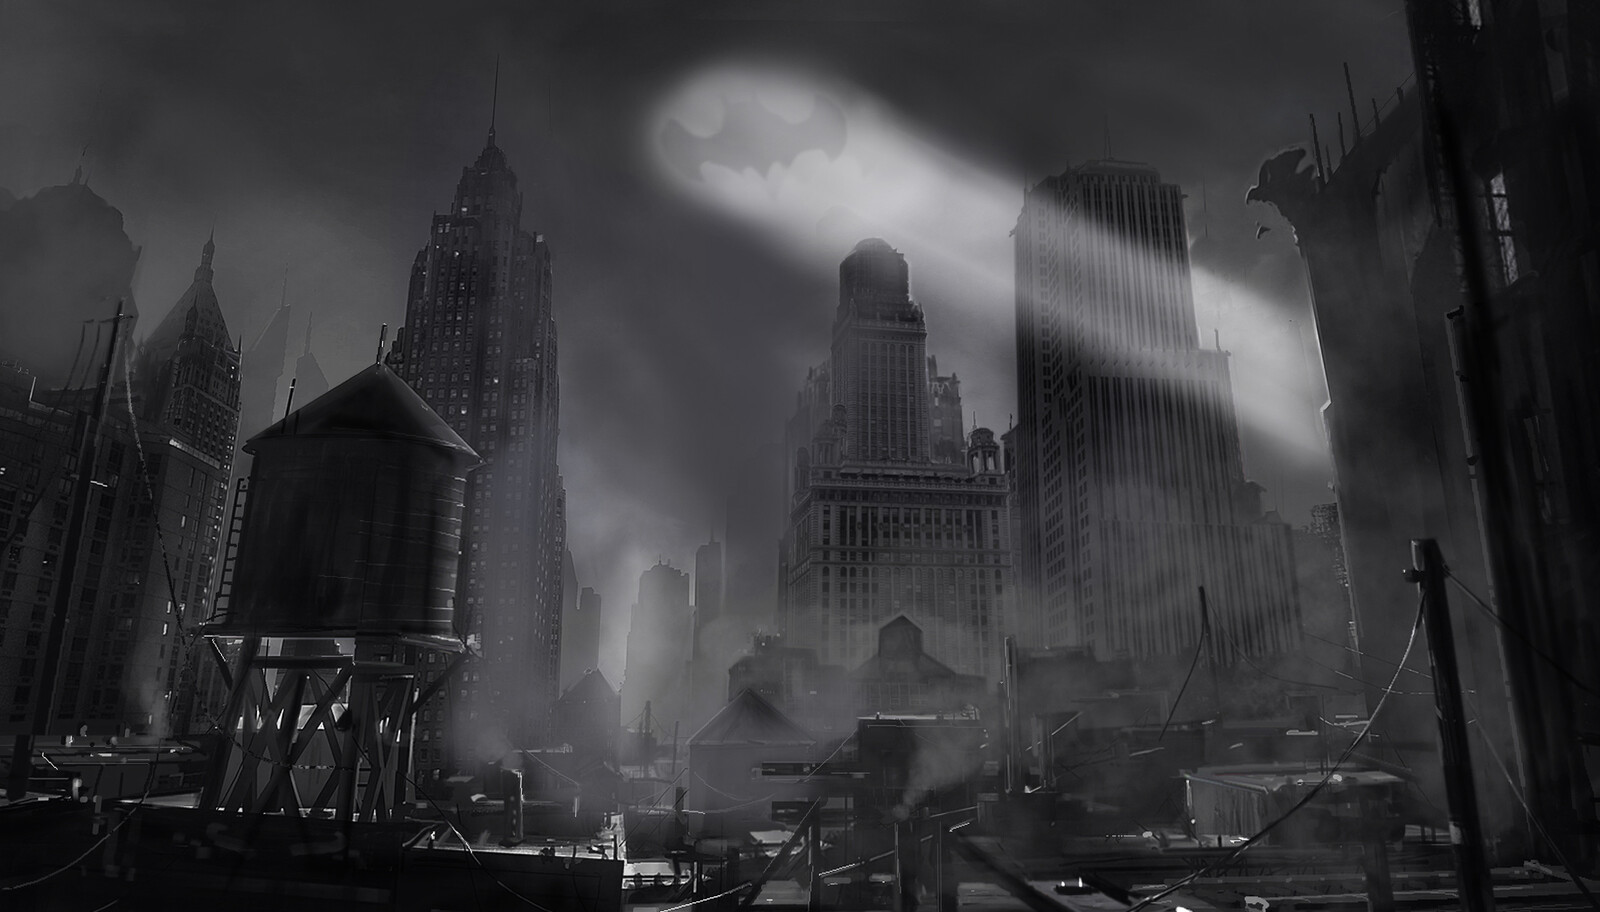 Batman city concept